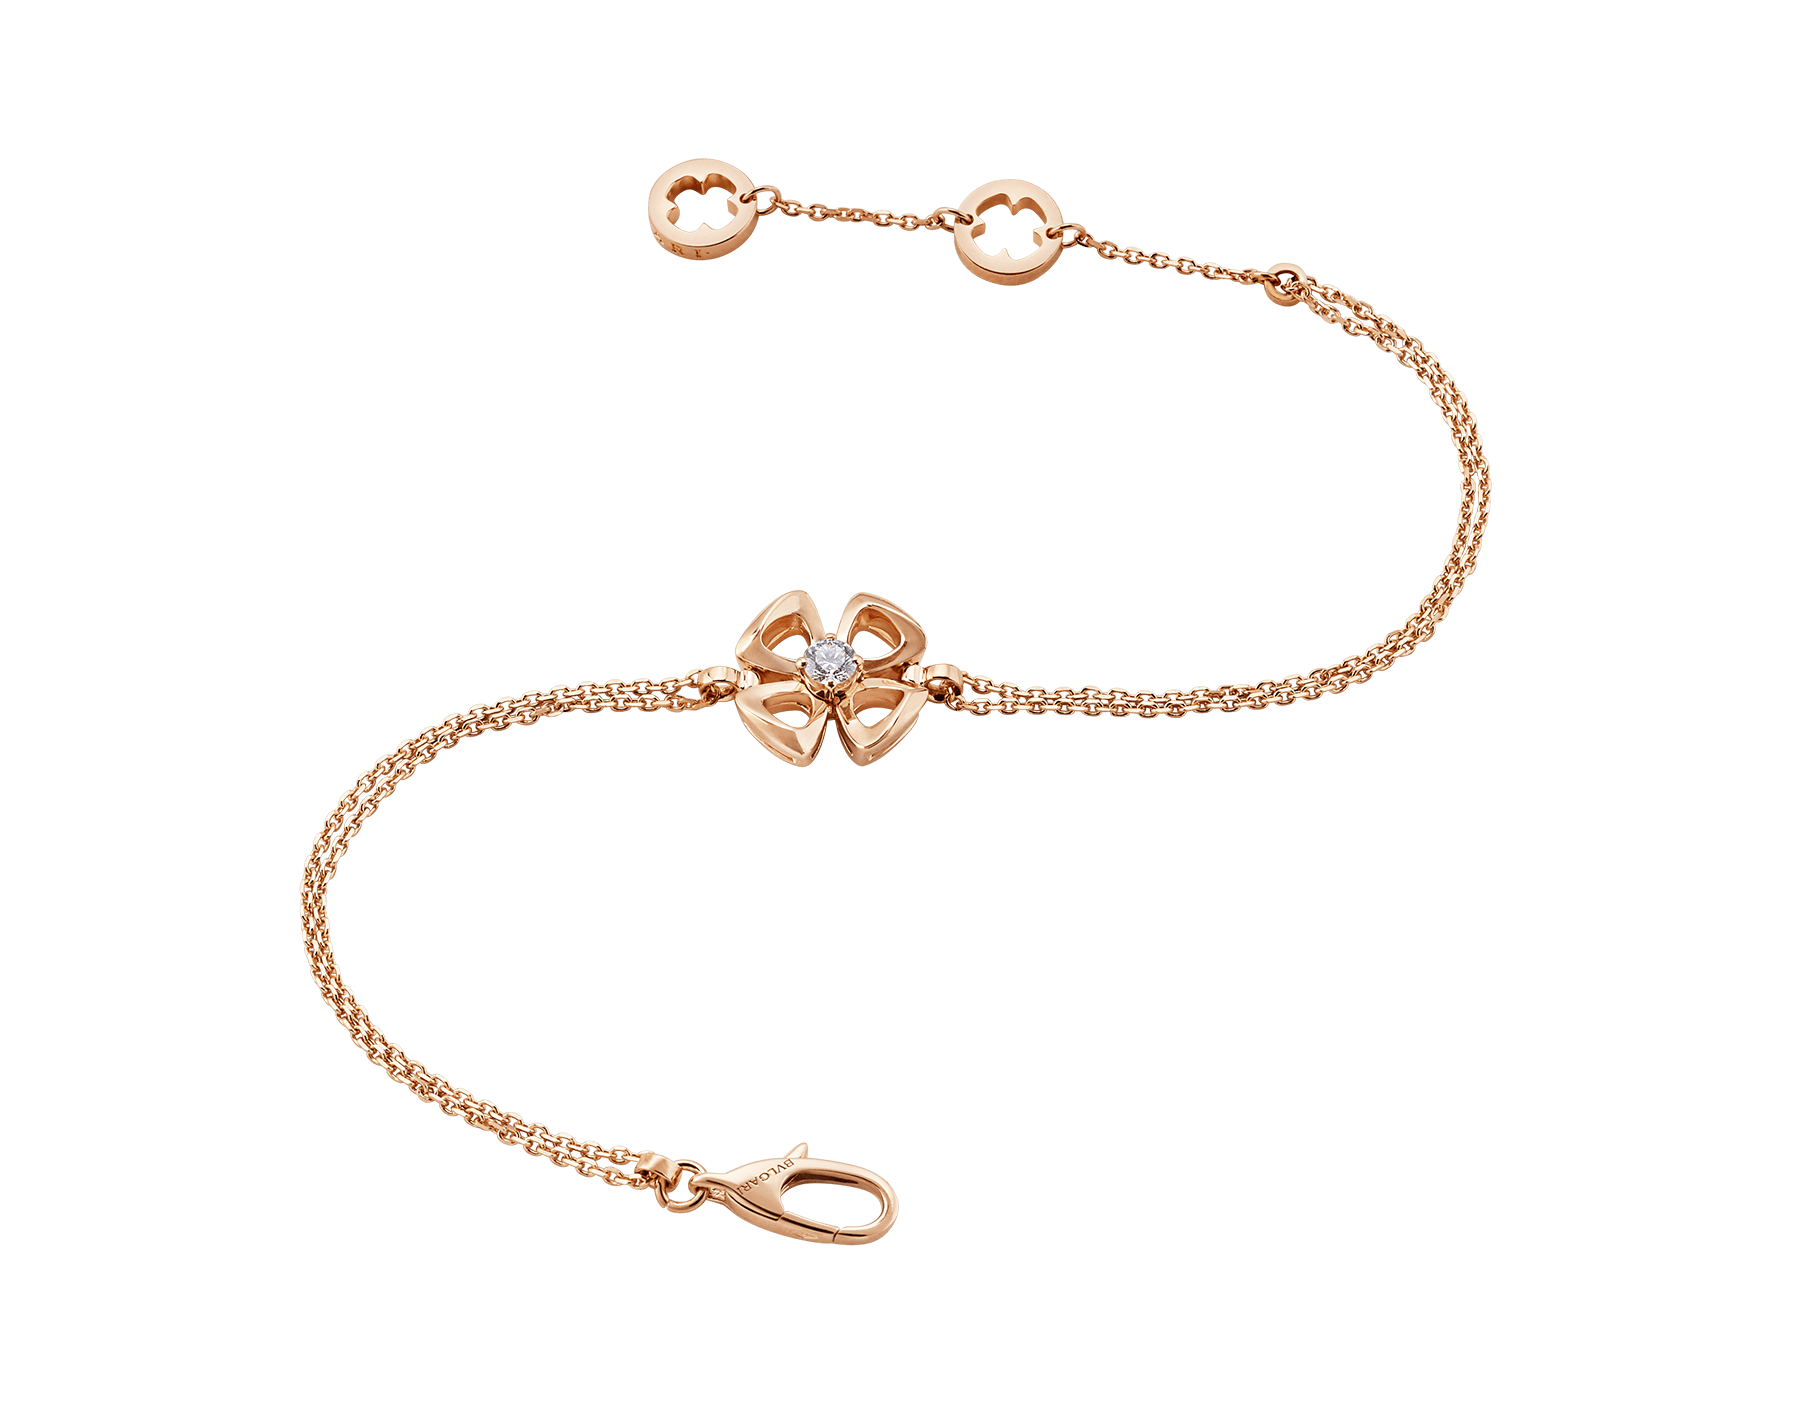 Fiorever 18 kt rose gold bracelet set with a central diamond (0.10 ct) BR858441 image 2